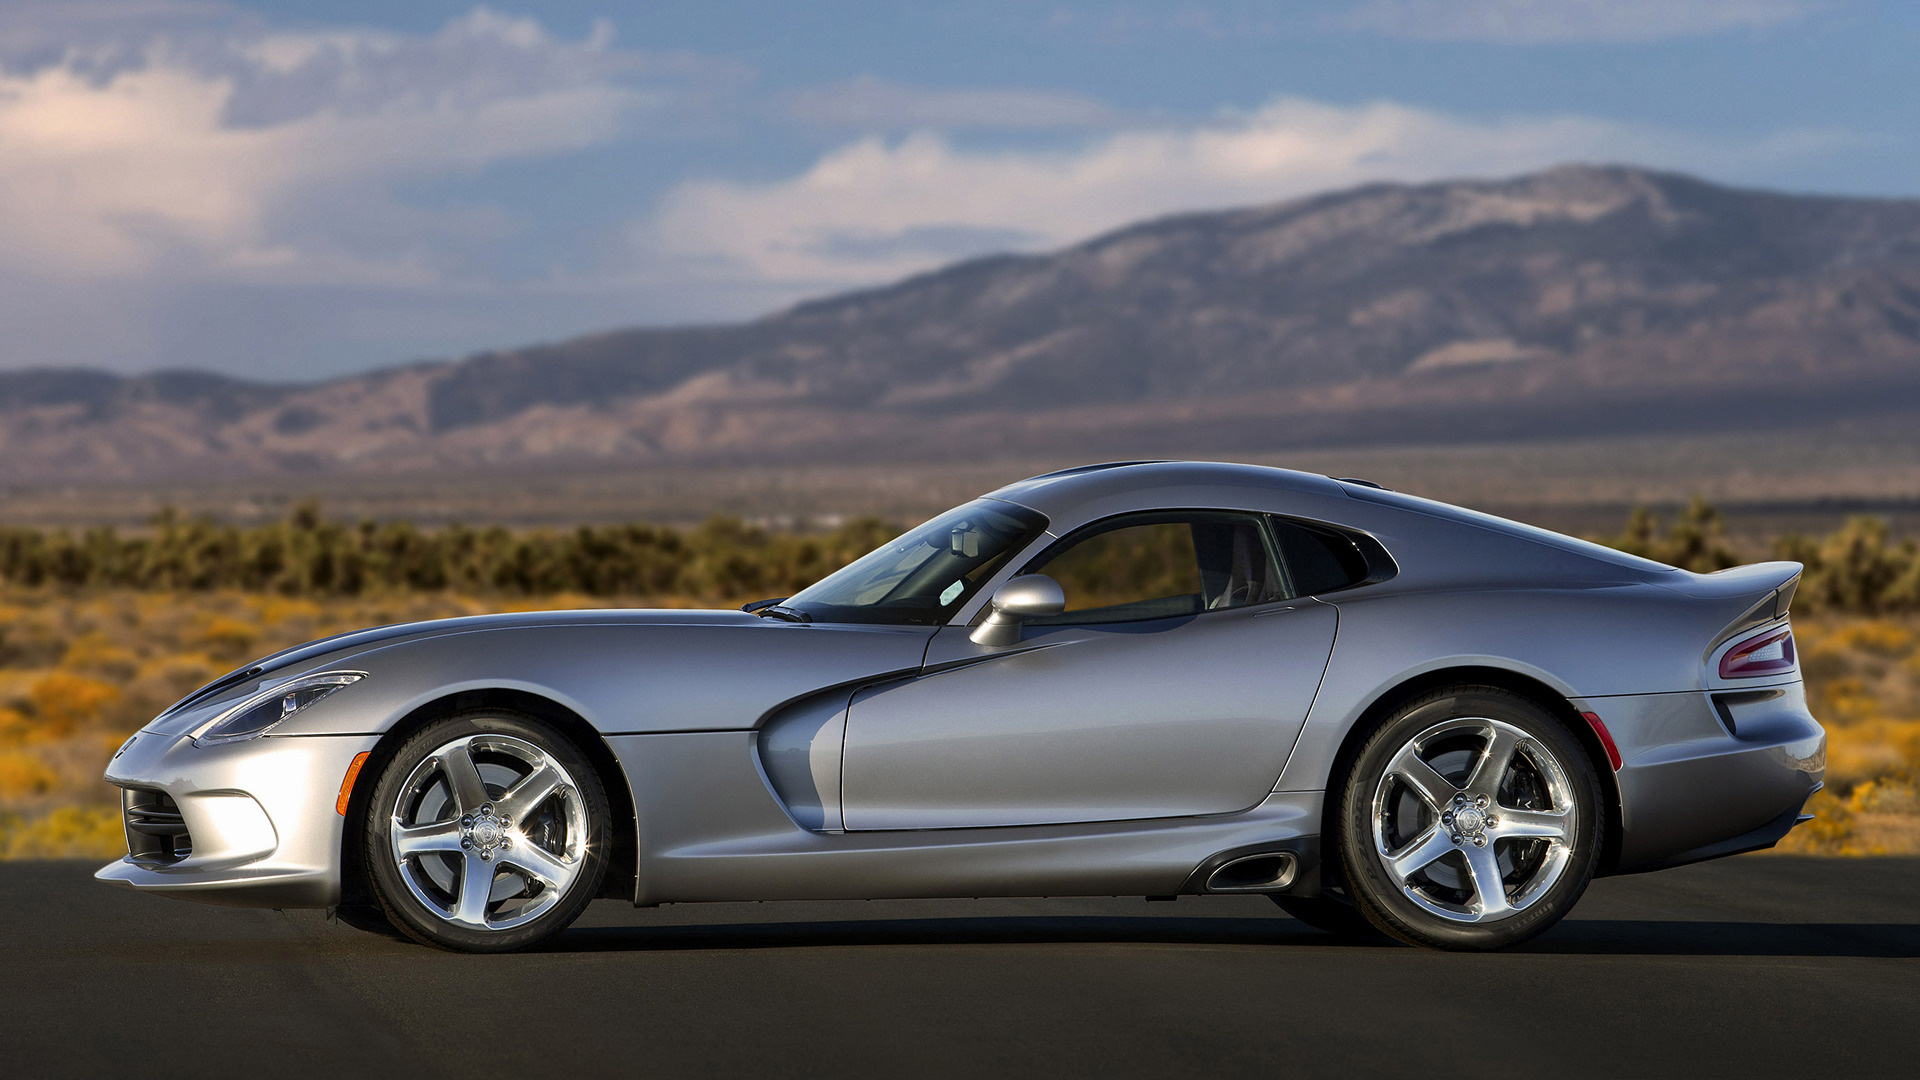 2015 Dodge Viper SRT   Wallpapers and HD Images Car Pixel 1920x1080